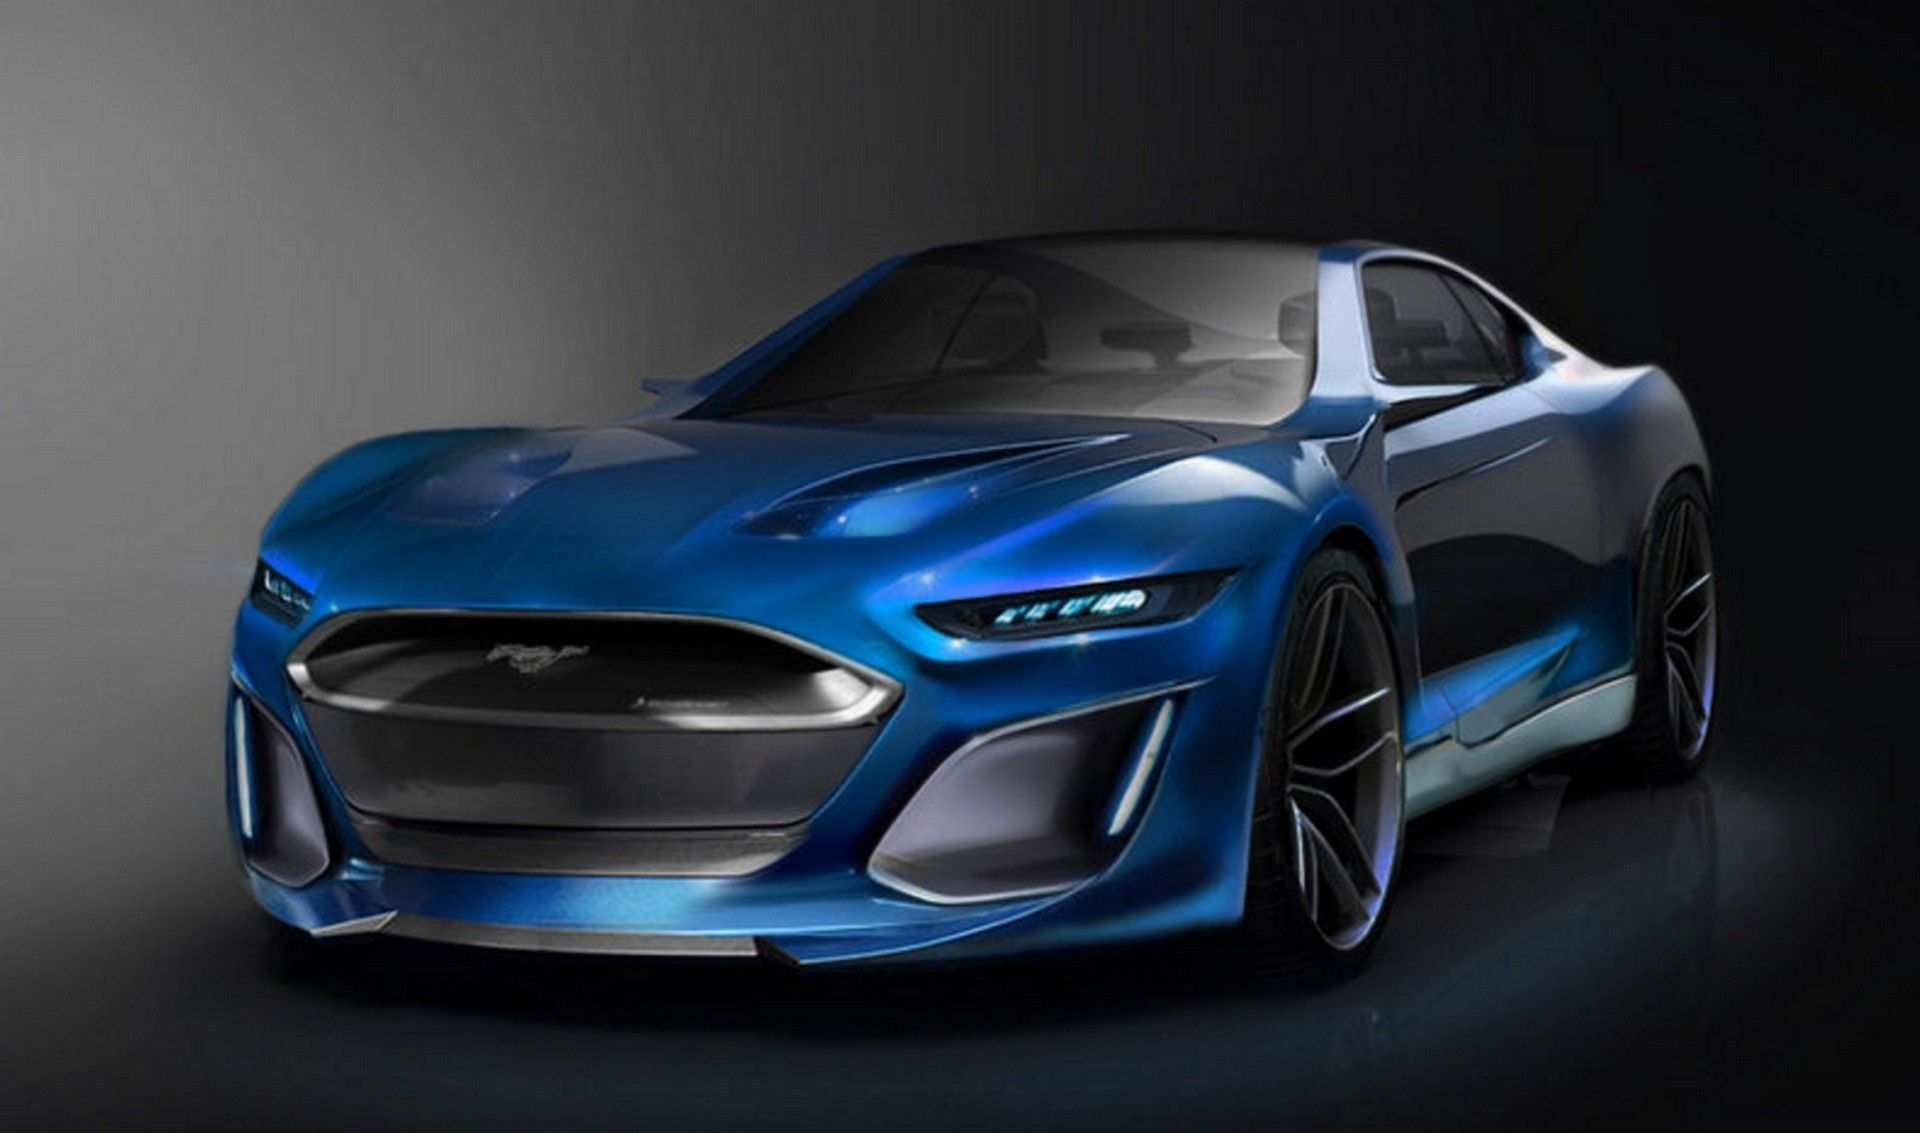 2021 Ford Mustang Gt500 Price In 2020 Ford Mustang Gt500 Concept Cars Ford Shelby